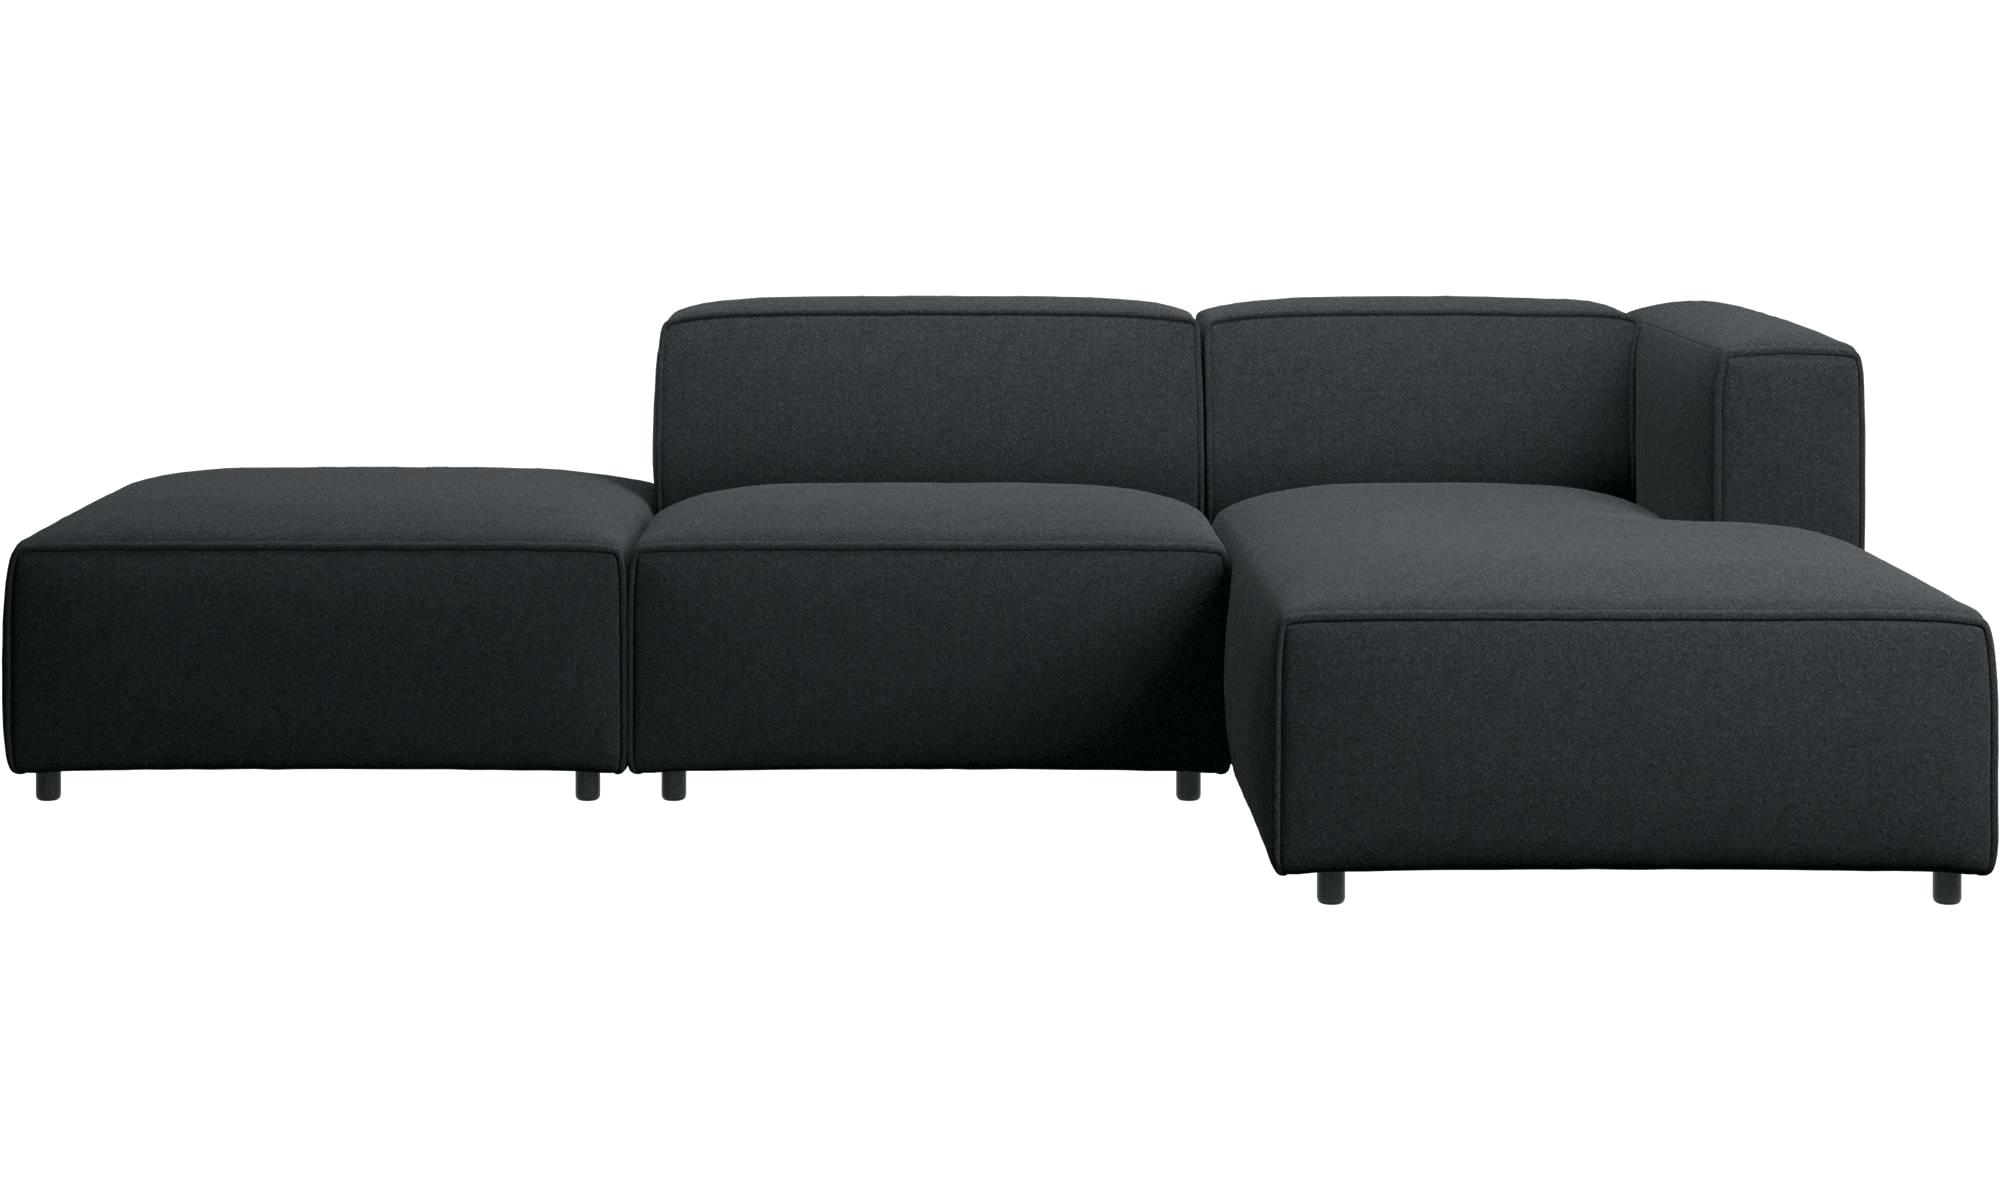 Widely Used Small Modular Sofas Regarding Sofa Modular Chaise Lounge Sofas Carmo With Lounging And Resting (View 15 of 15)